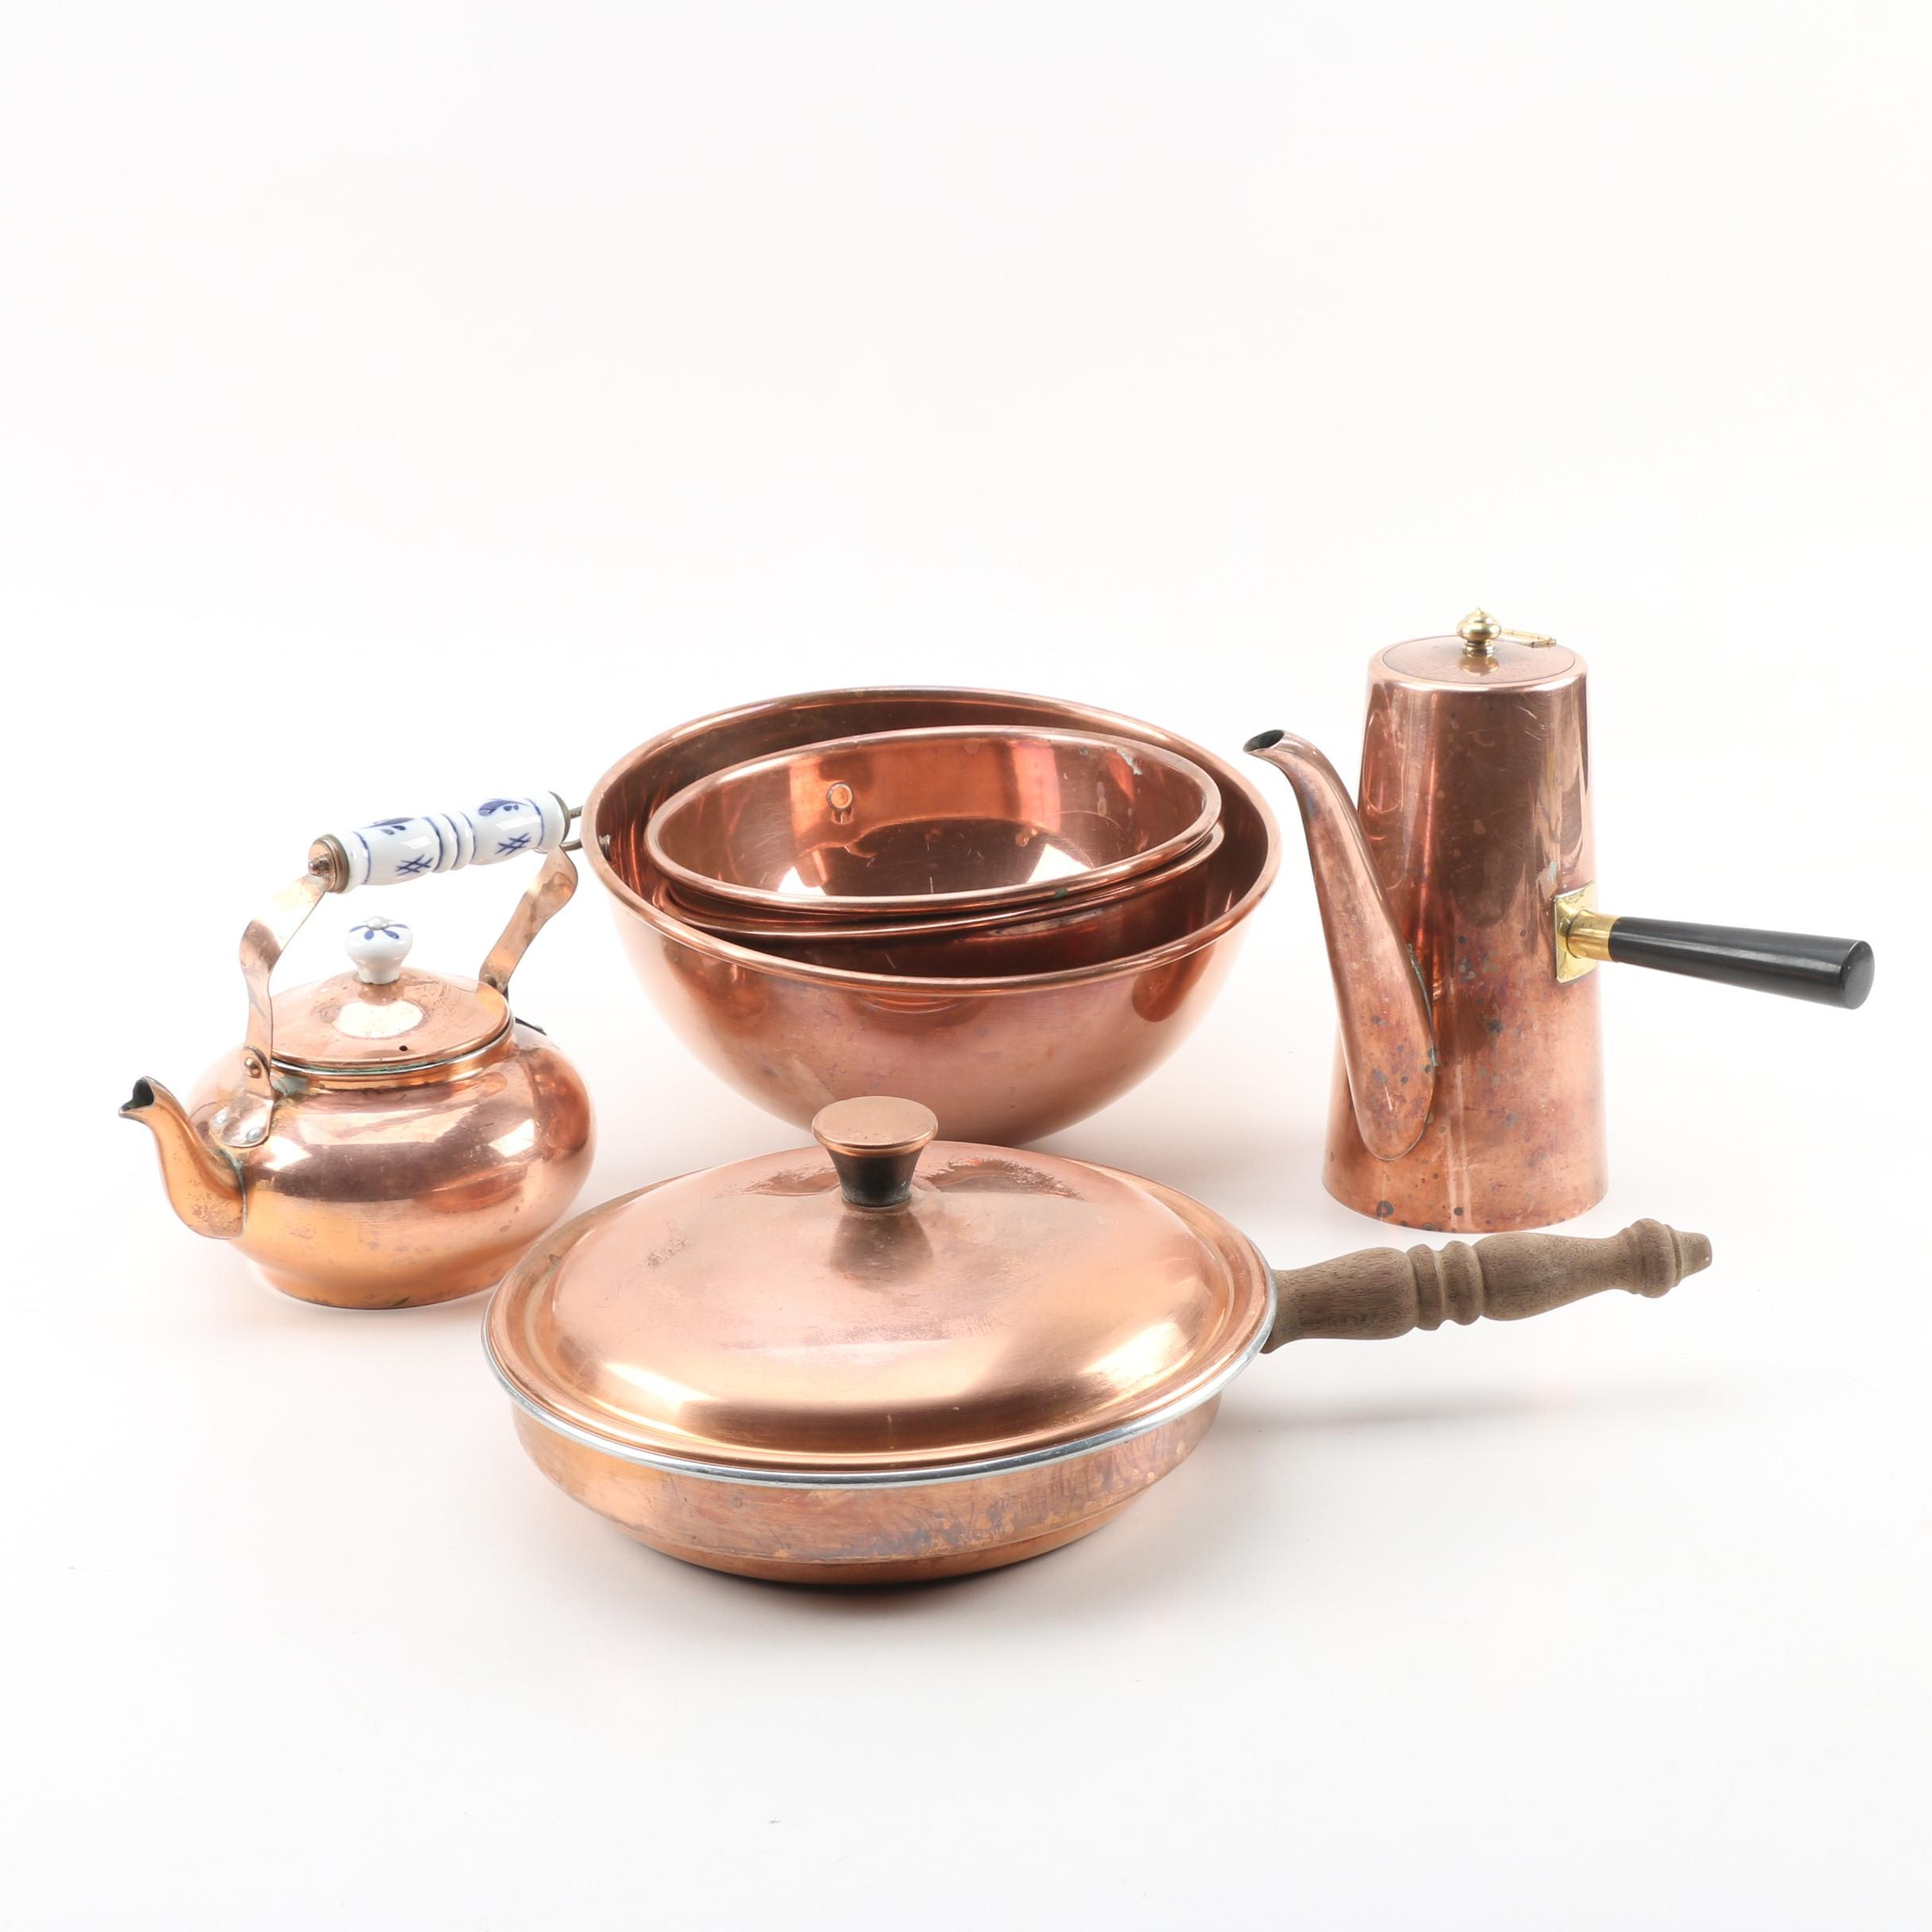 Vintage Copper Cookware and Serveware